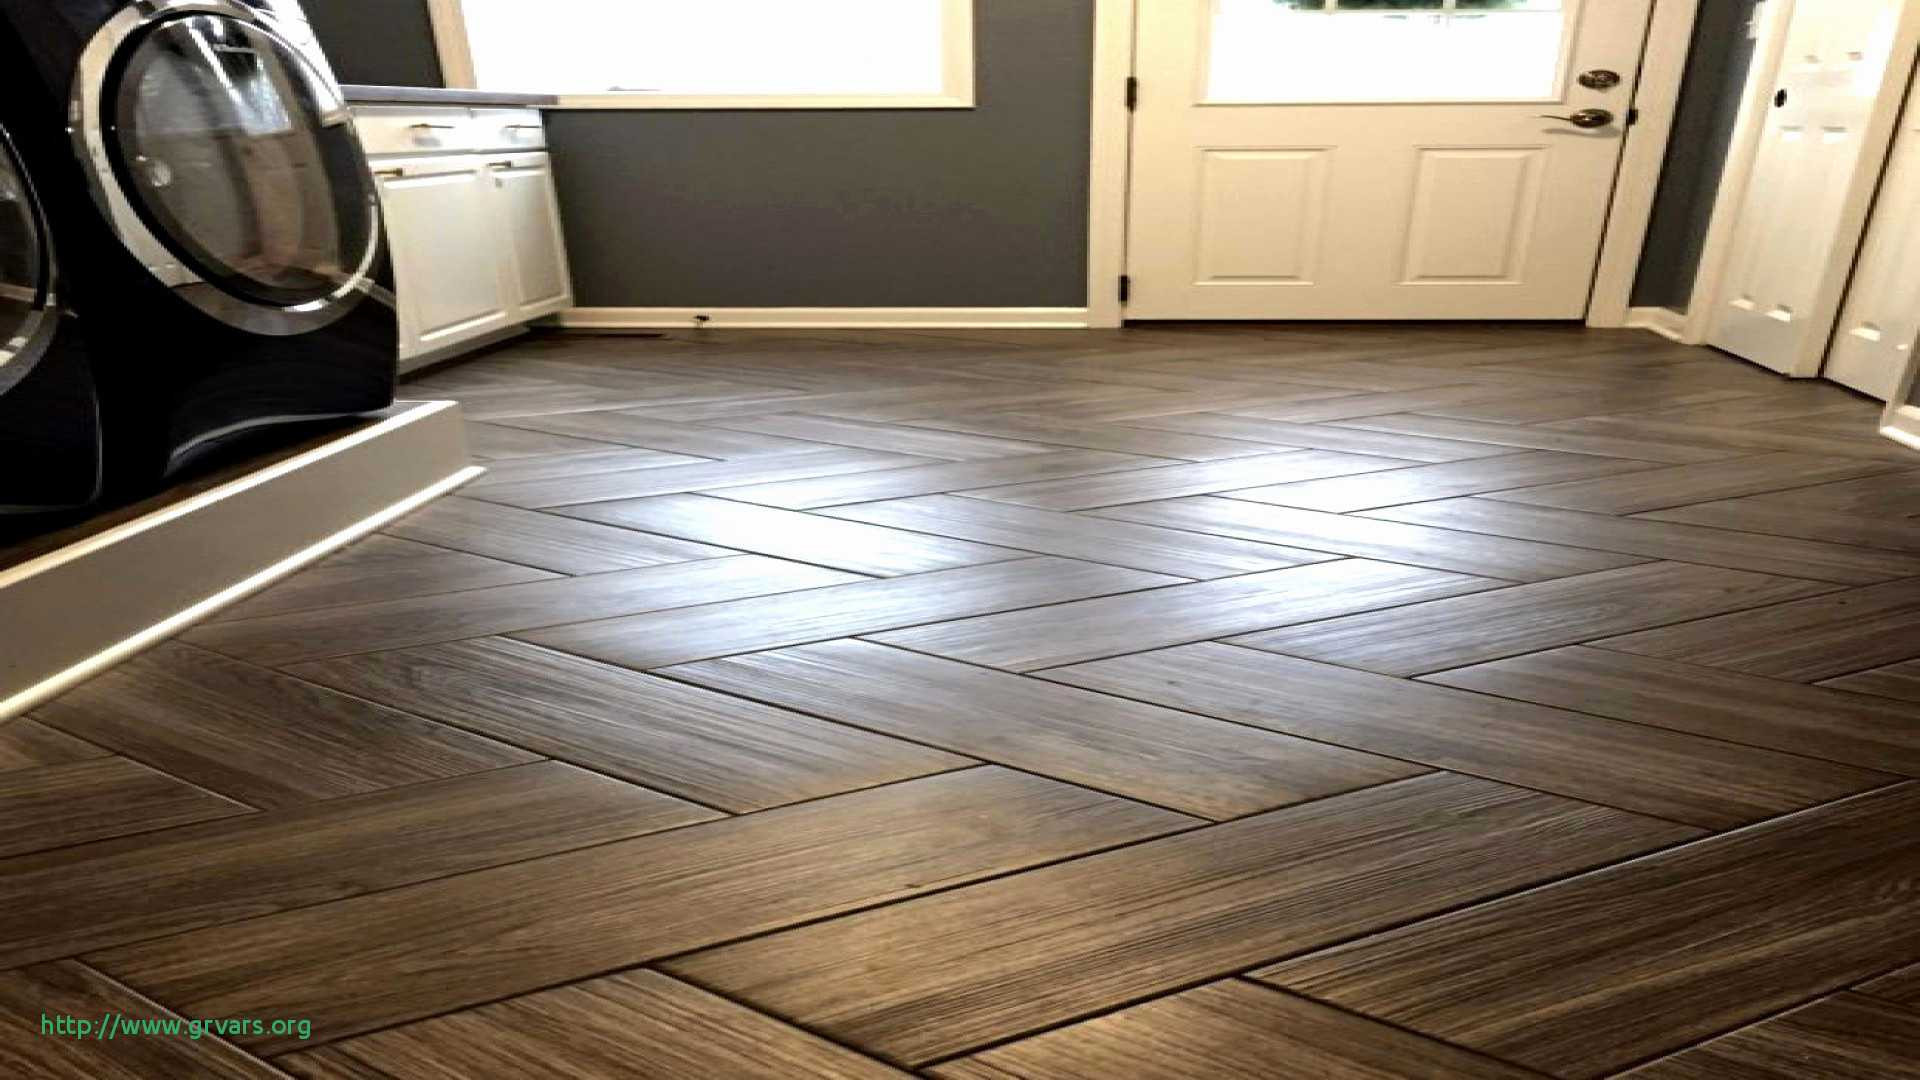 how to install prefinished hardwood floors yourself of 16 charmant step by step hardwood floor installation ideas blog with regard to kitchen floor tiles home depot elegant s media cache ak0 pinimg 736x 43 0d 97 best